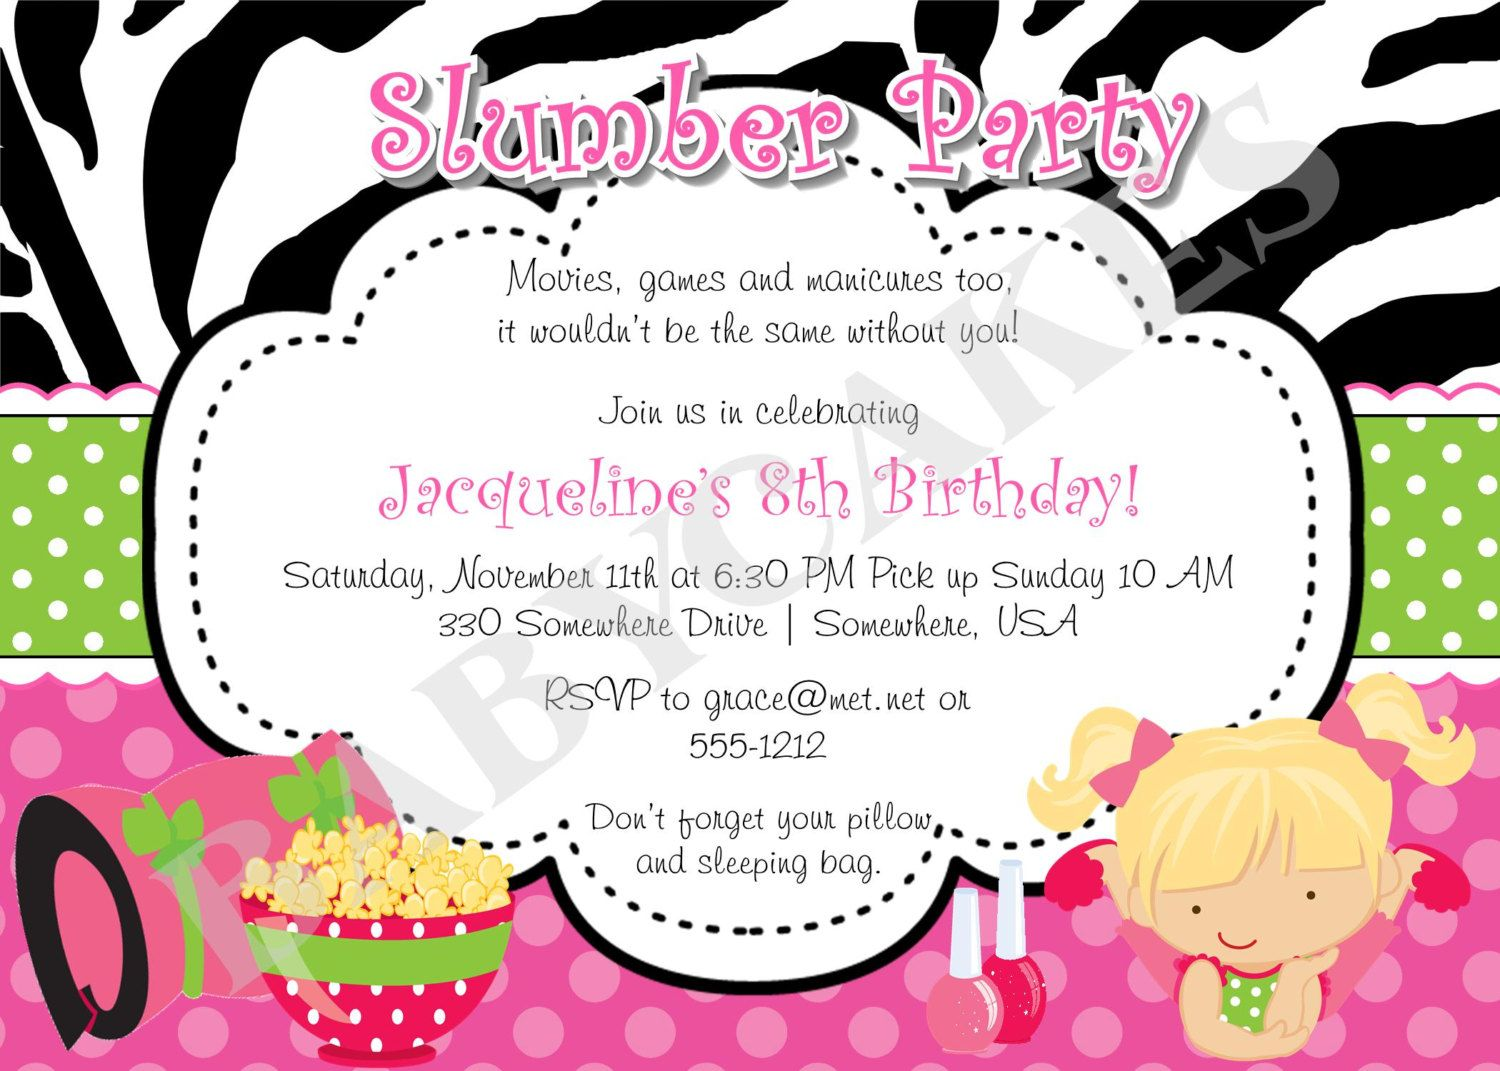 Slumber Party birthday Invitation invite Sleepover Pajama Party ...